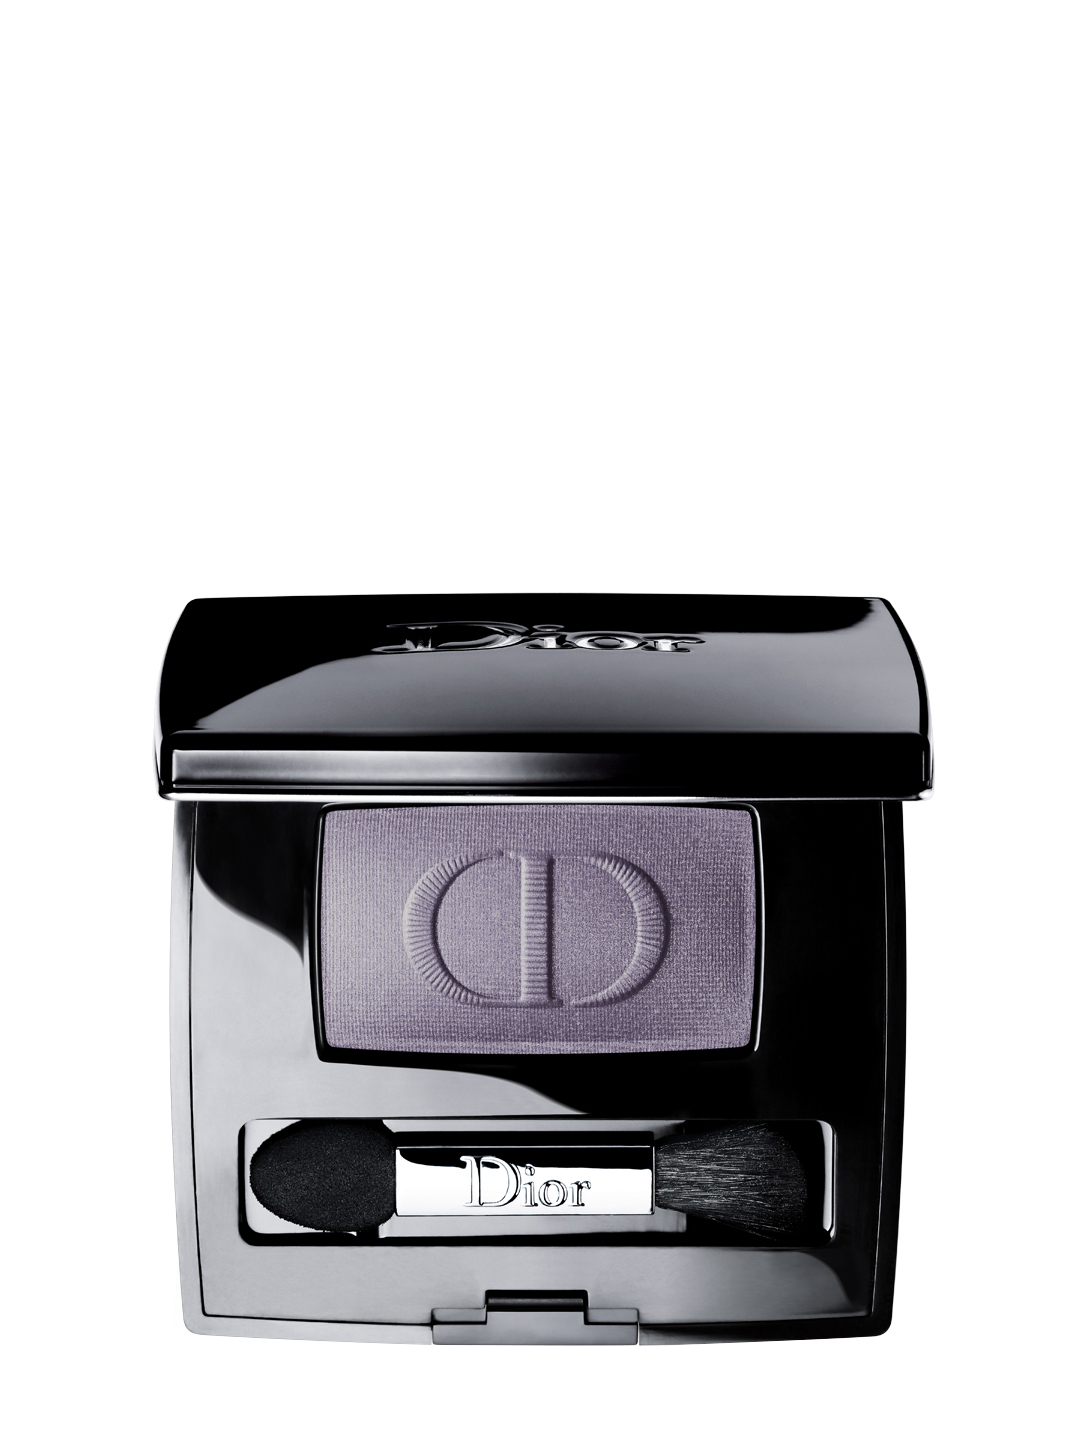 DIOR Diorshow Mono Professional Eyeshadow Spectacular Effects & Long Wear Beauty Purple